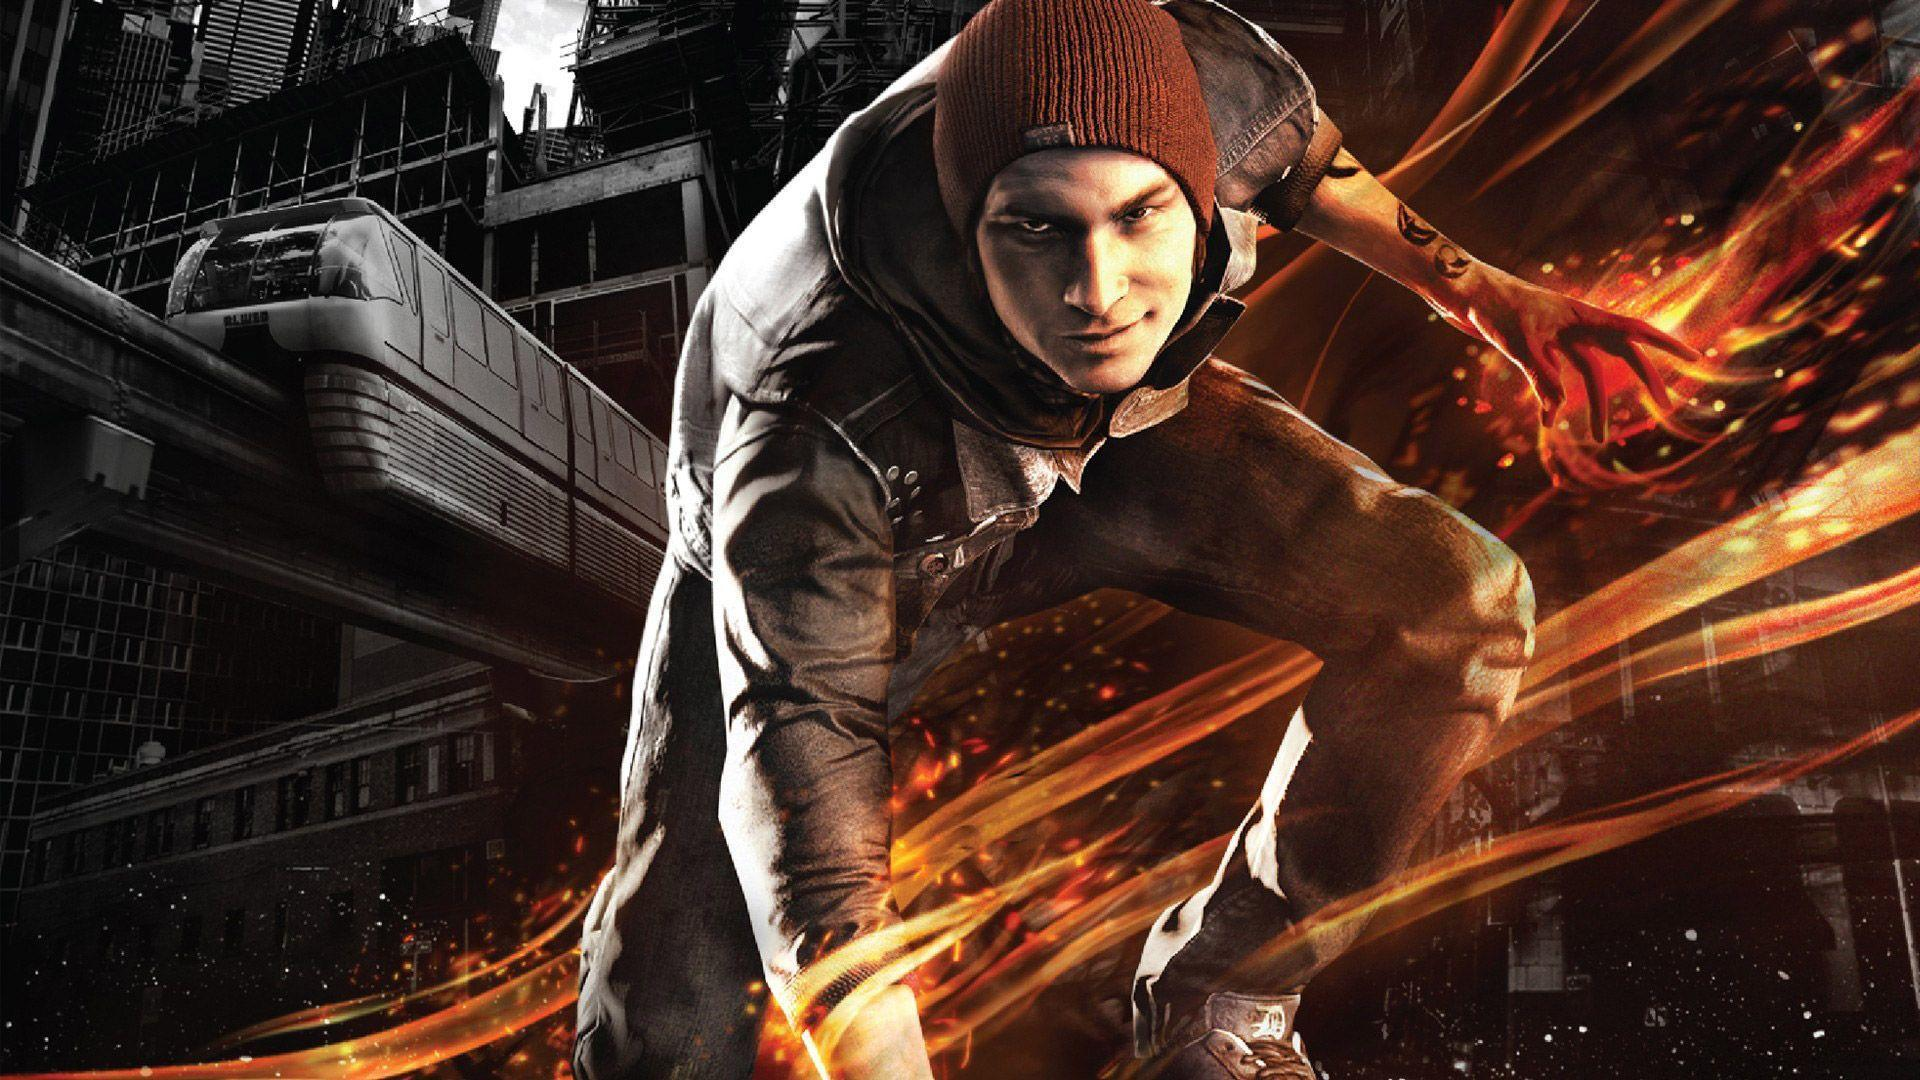 Infamous Second Son Wallpapers - Wallpaper Cave